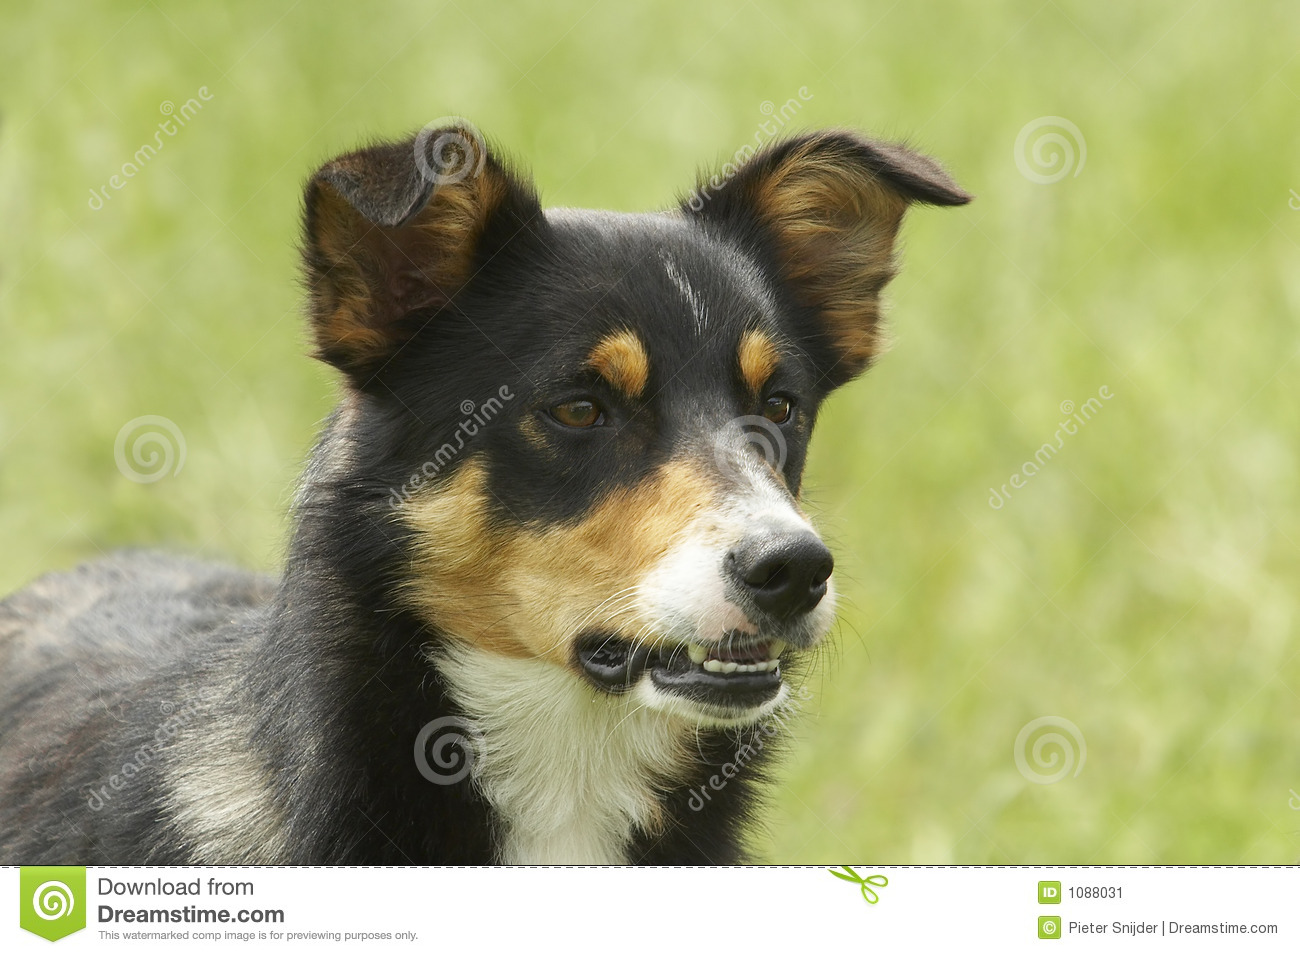 This sheep dog is looking a bit angry please comment after download